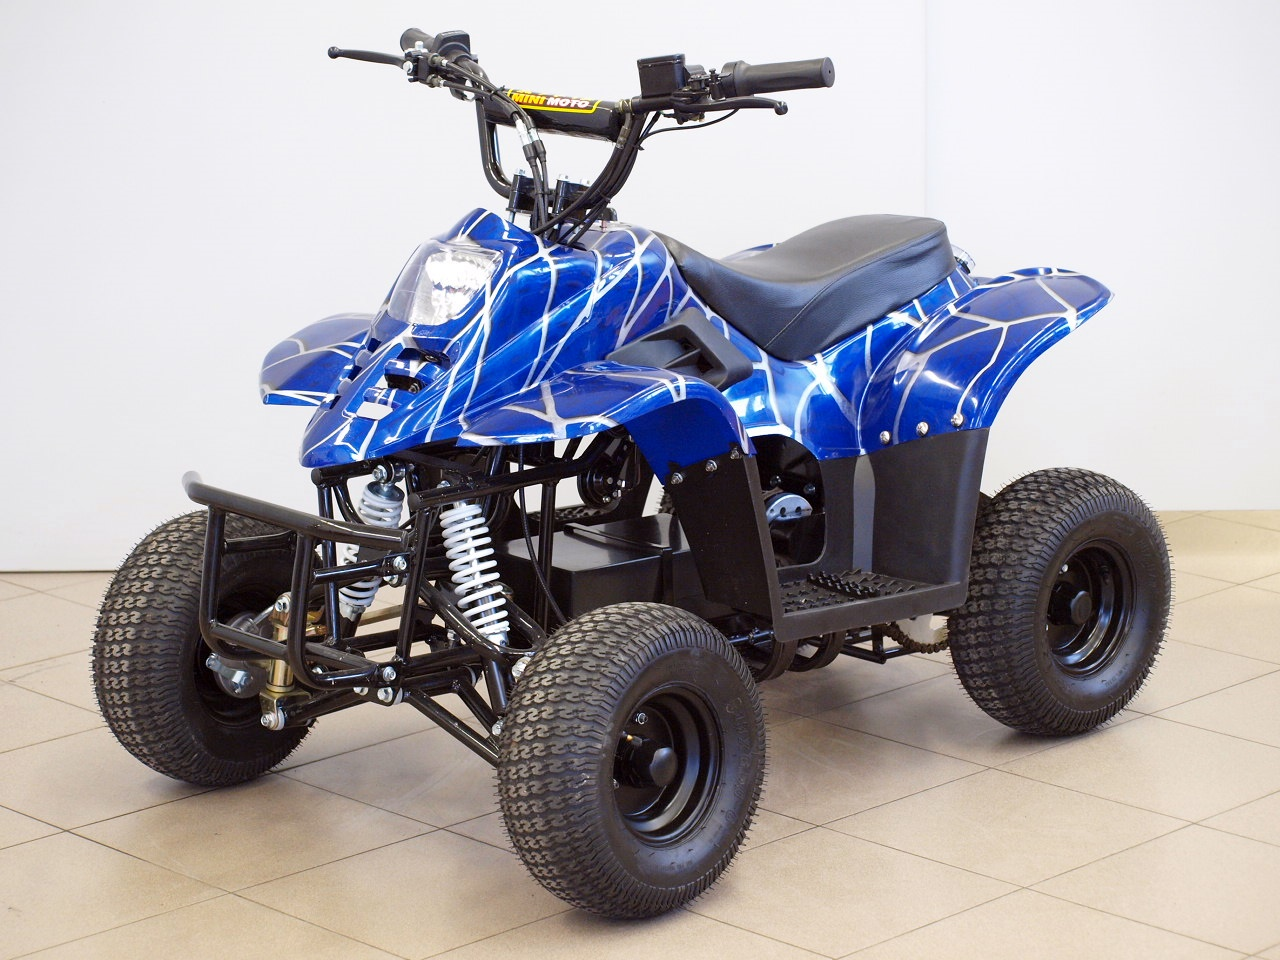 24 Hour Tire >> ELECTRIC QUAD BIKE 1000WAT CRUSADER SUPER EDITION